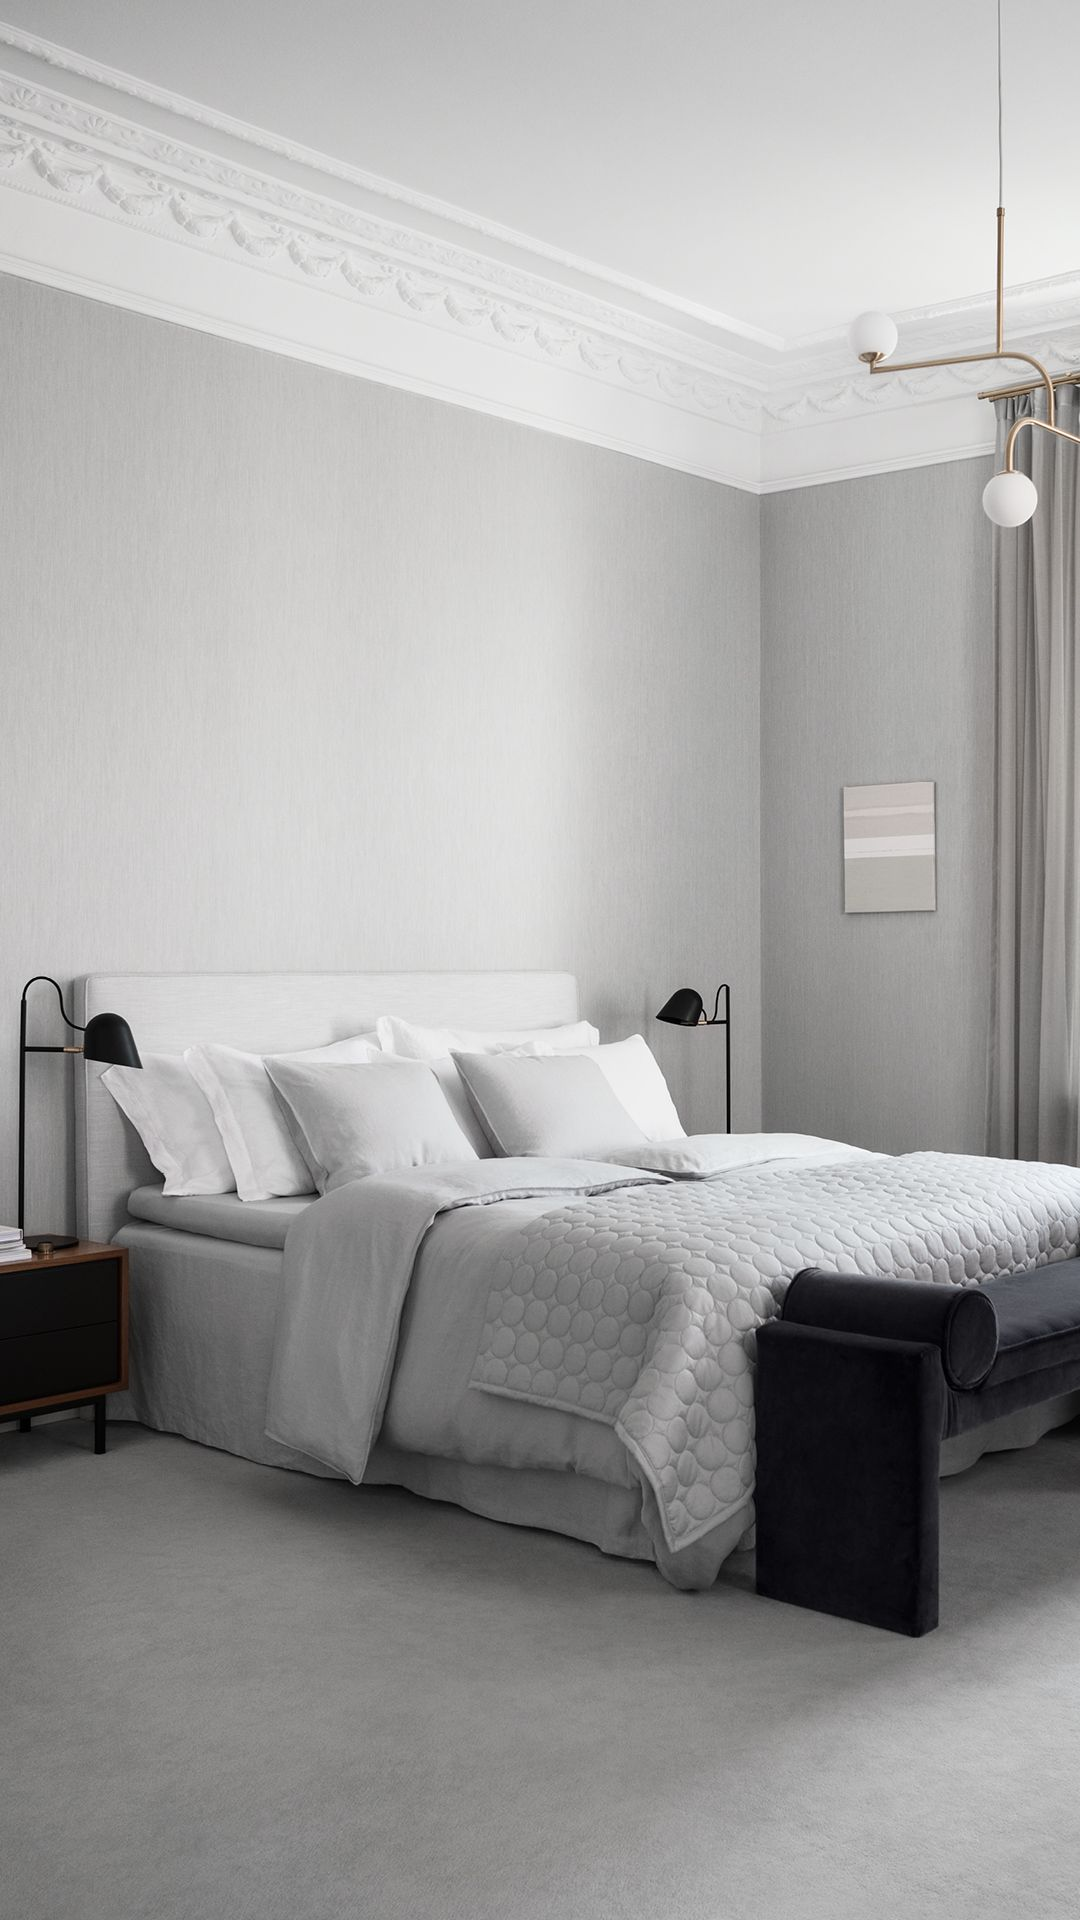 Create A Luxury Hotel Style With Our New Home Collection In Sober Colours  And High